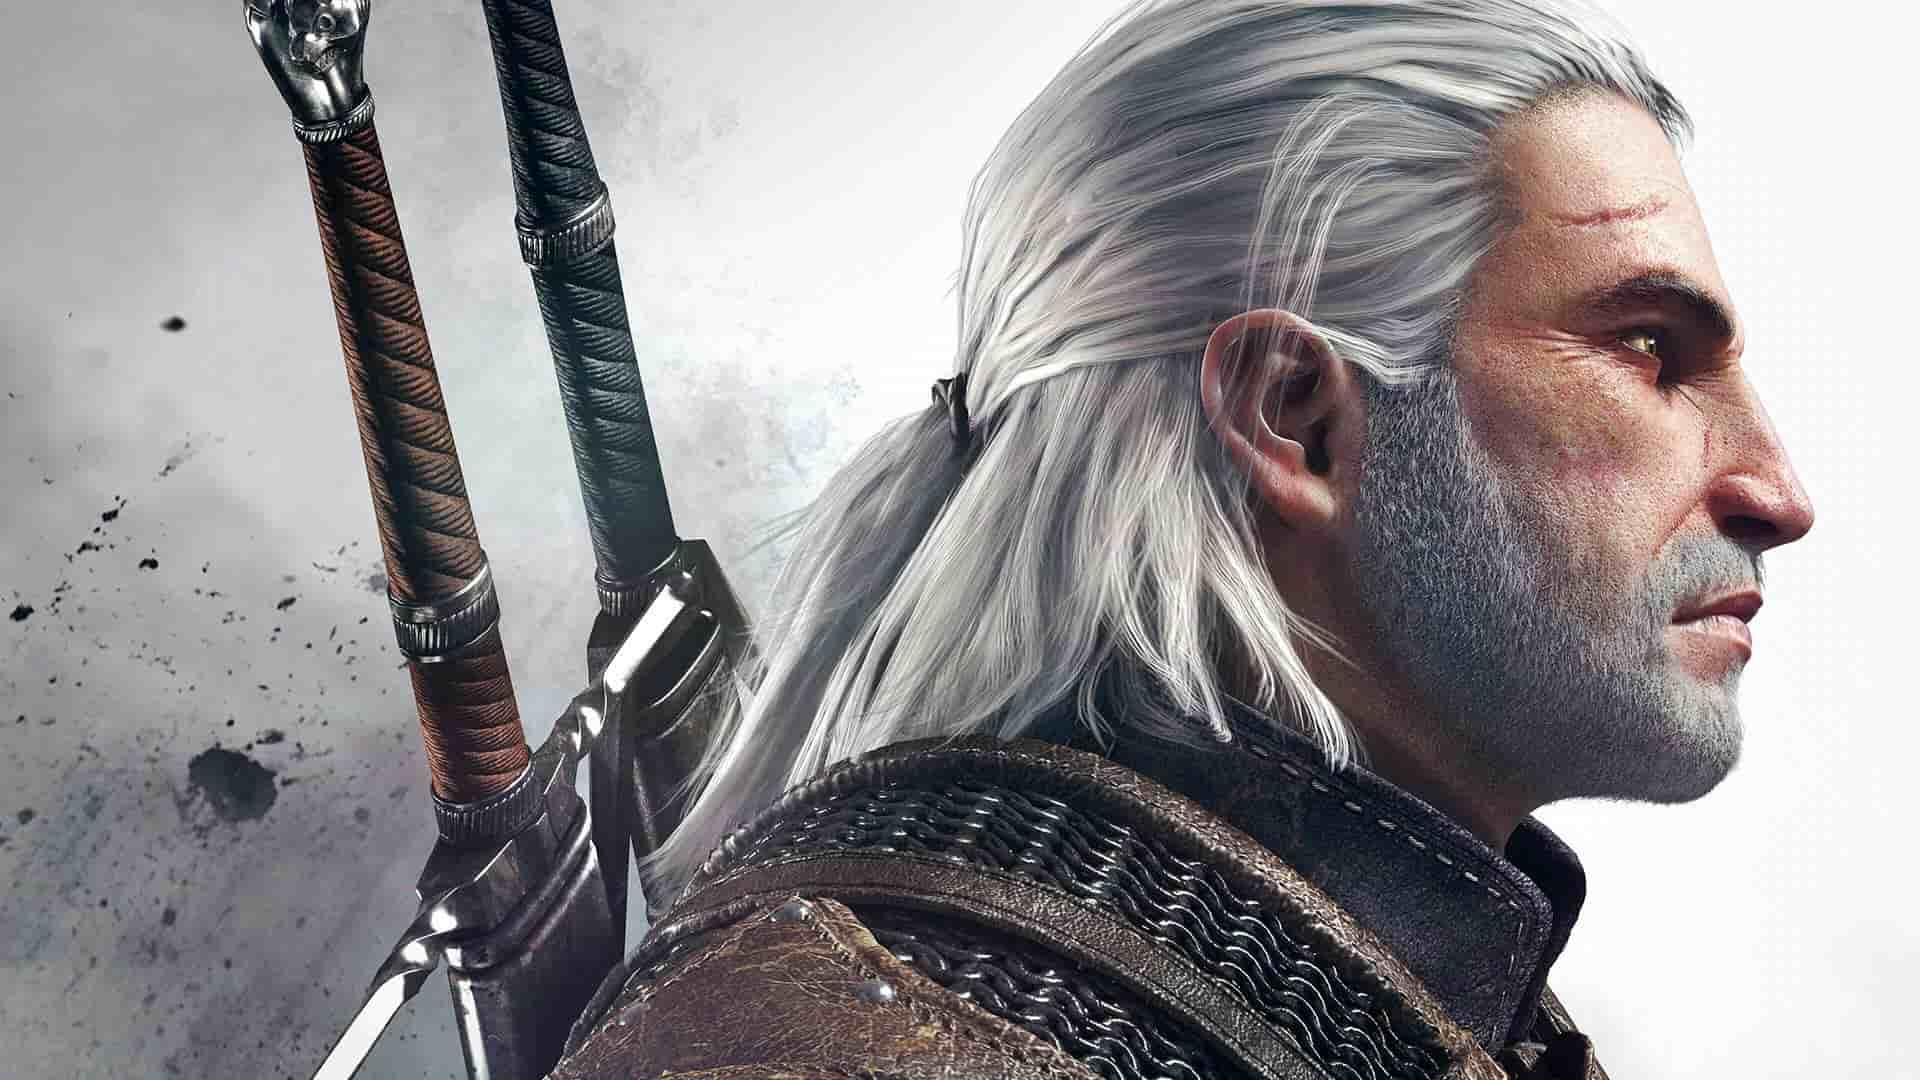 SoulCalibur VI Geralt Gameplay Clip Confirms The Witcher Crossover